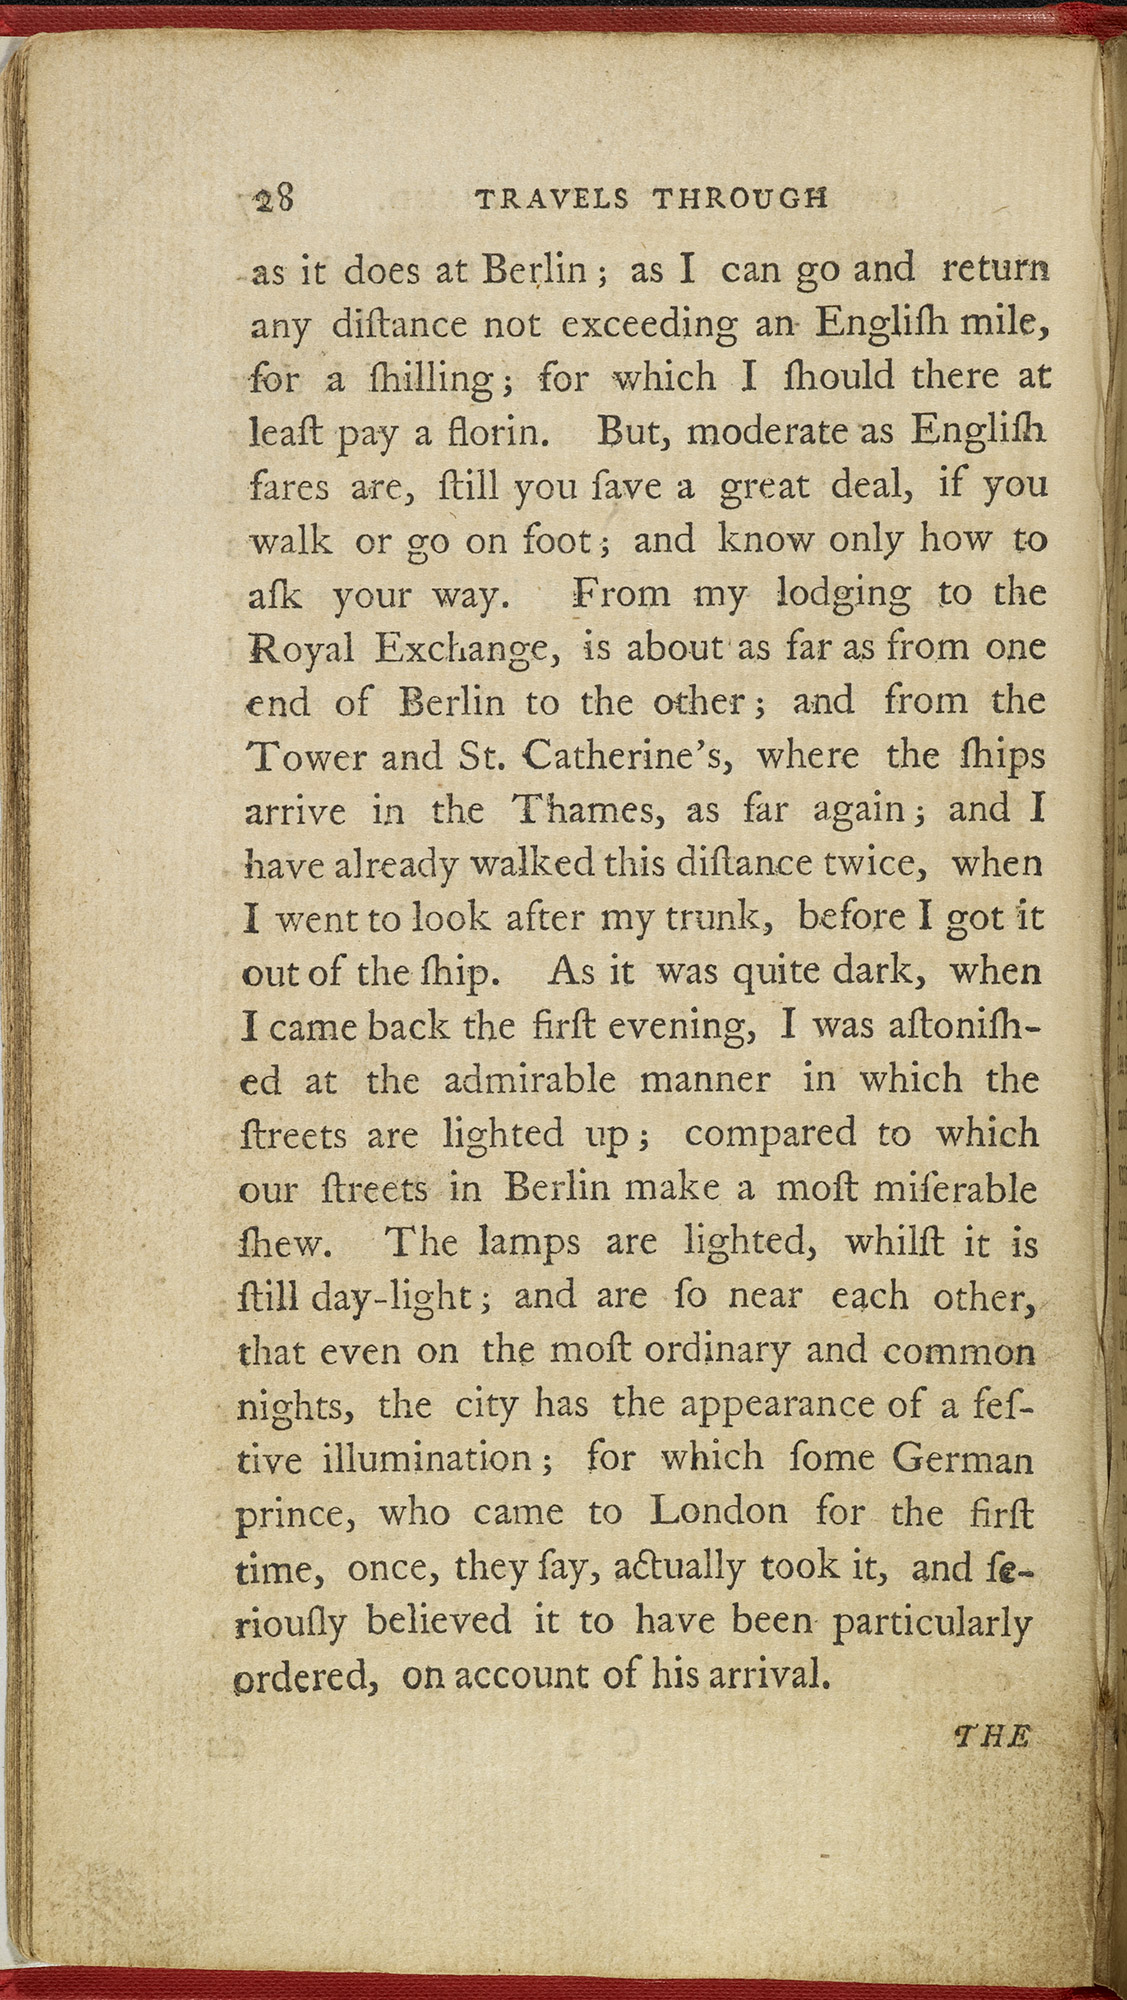 Late 18th century description of London's new street lights